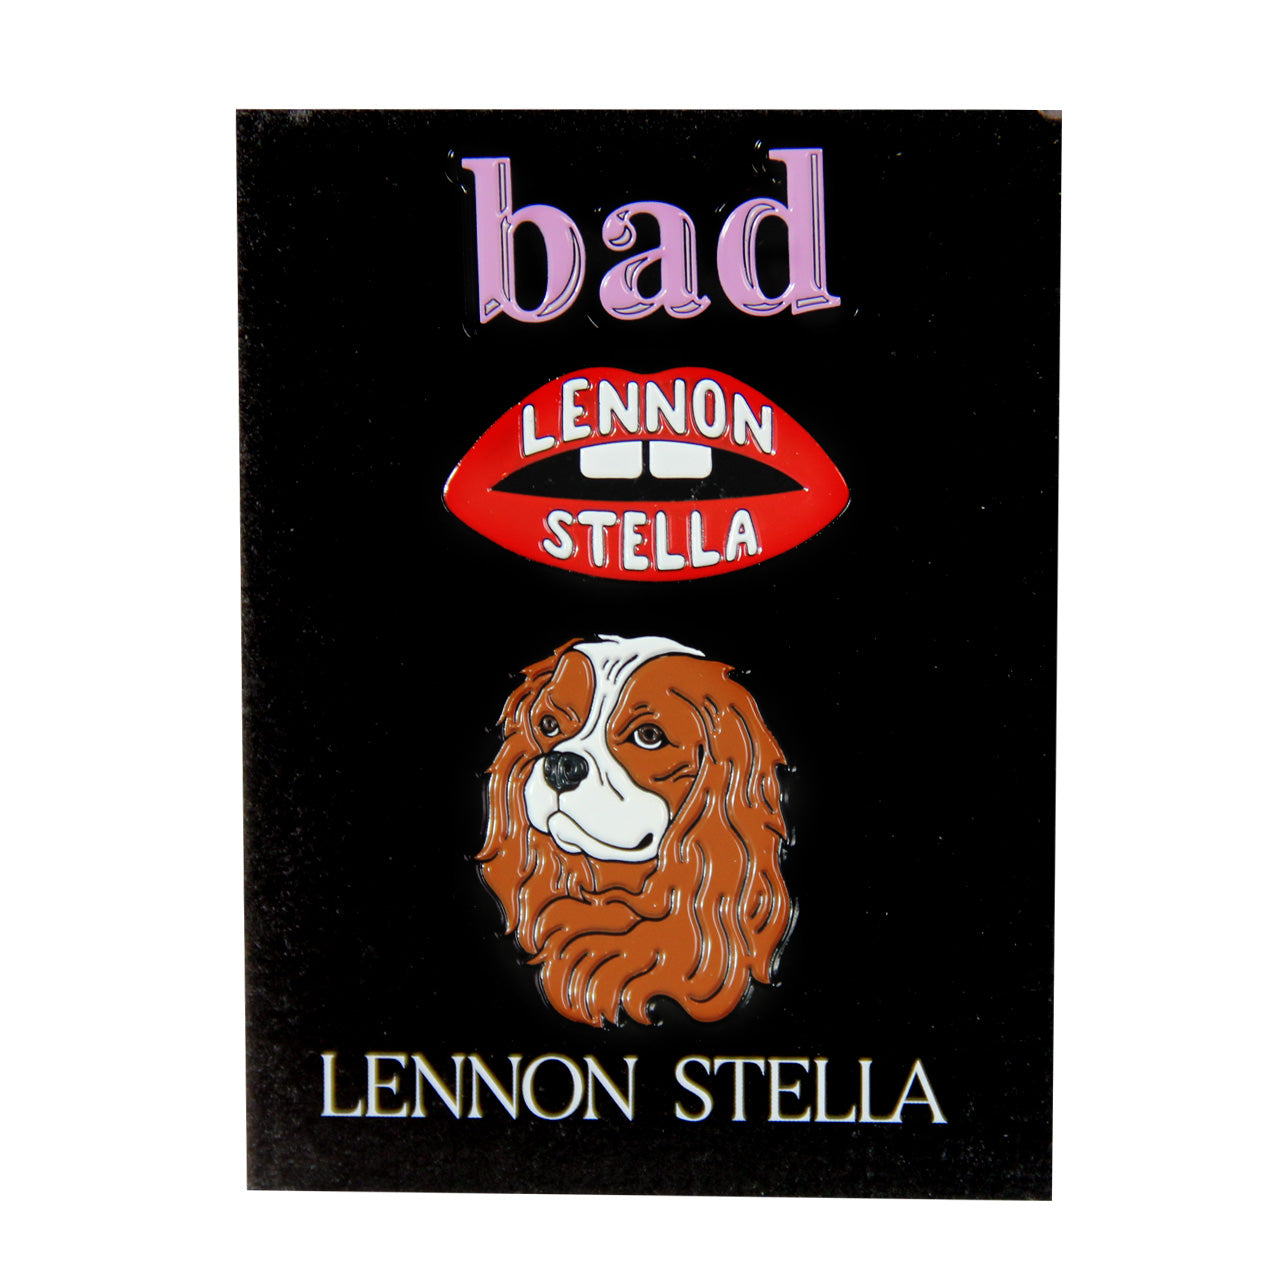 Lennon Stella Pins - Set of 3